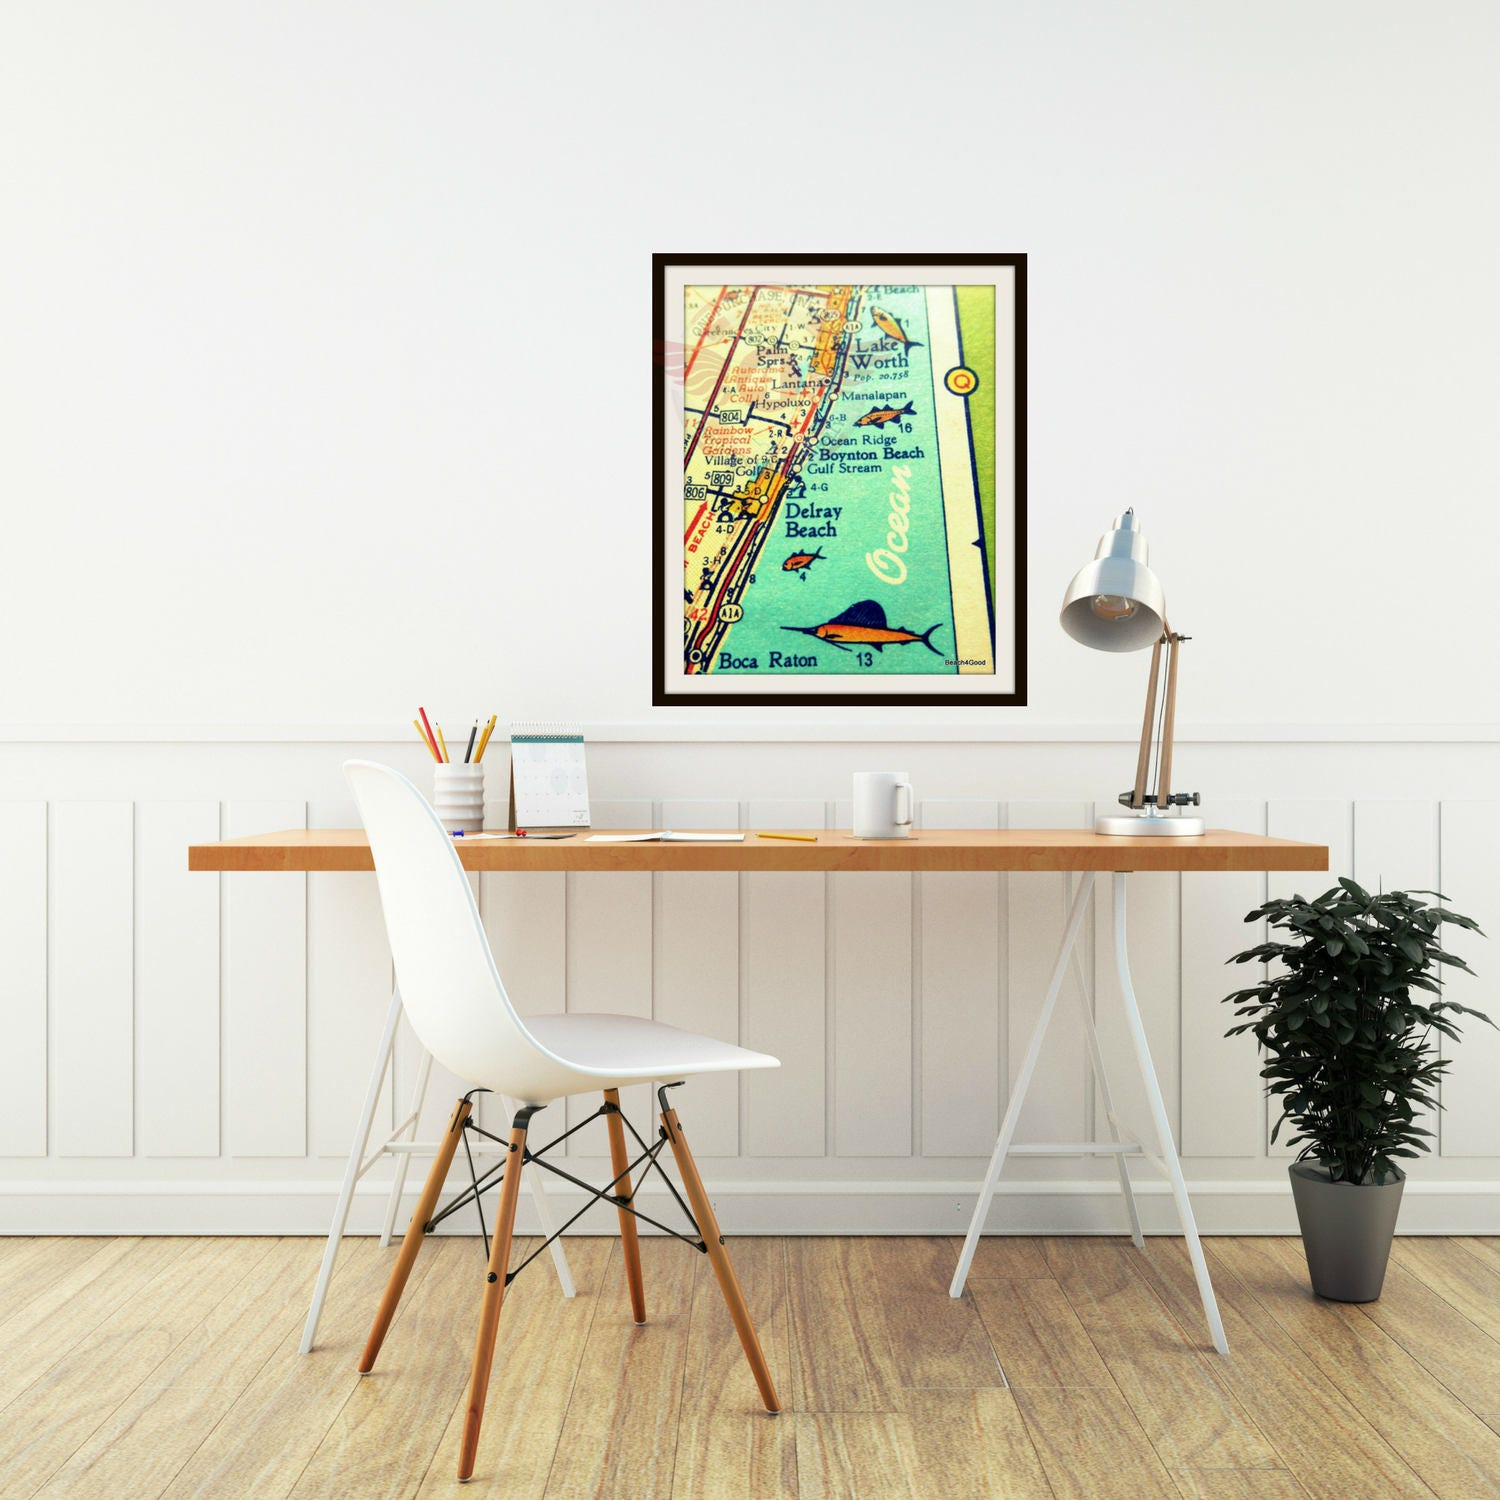 Delray beach map print boca raton retro florida map pompano request a custom order and have something made just for you negle Gallery